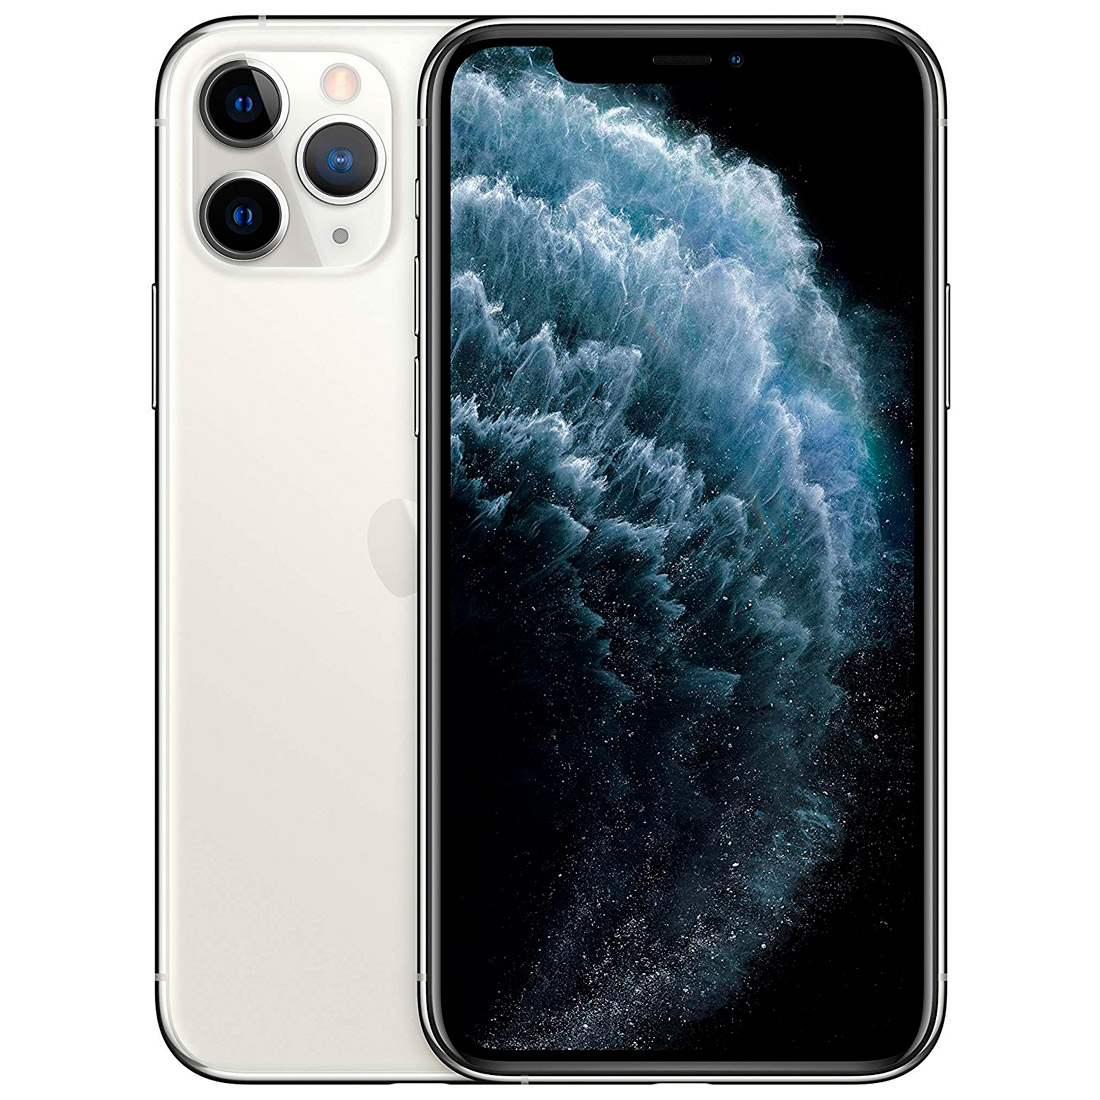 Smartphone iPhone 11 Pro Max 64GB Silver 6.5""